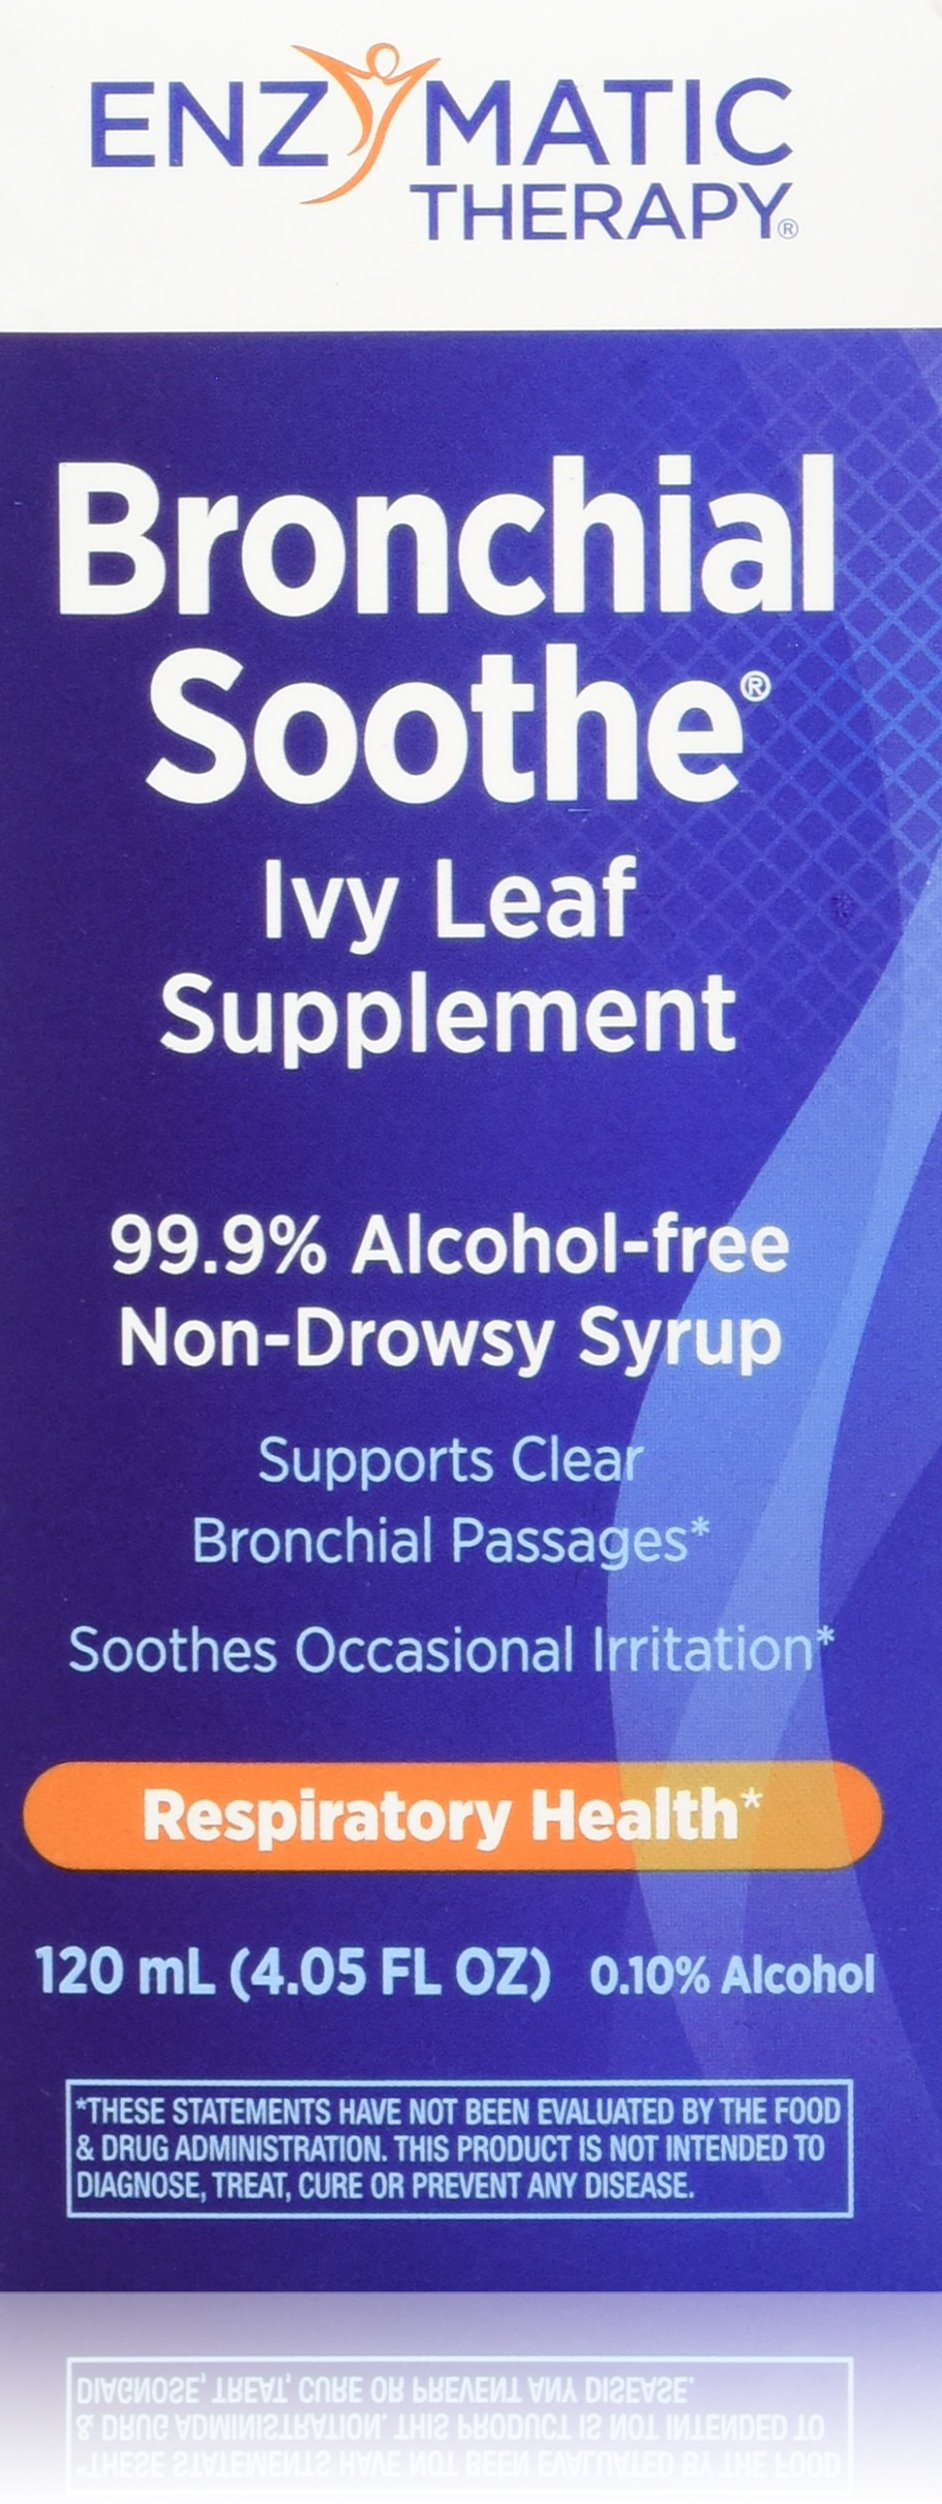 Enzymatic Therapy Bronchial Soothe 99.9% Alcohol Free Non Drowsy Syrup, Ivy Leaf, 120 ml, 4.05 Fluid Ounce